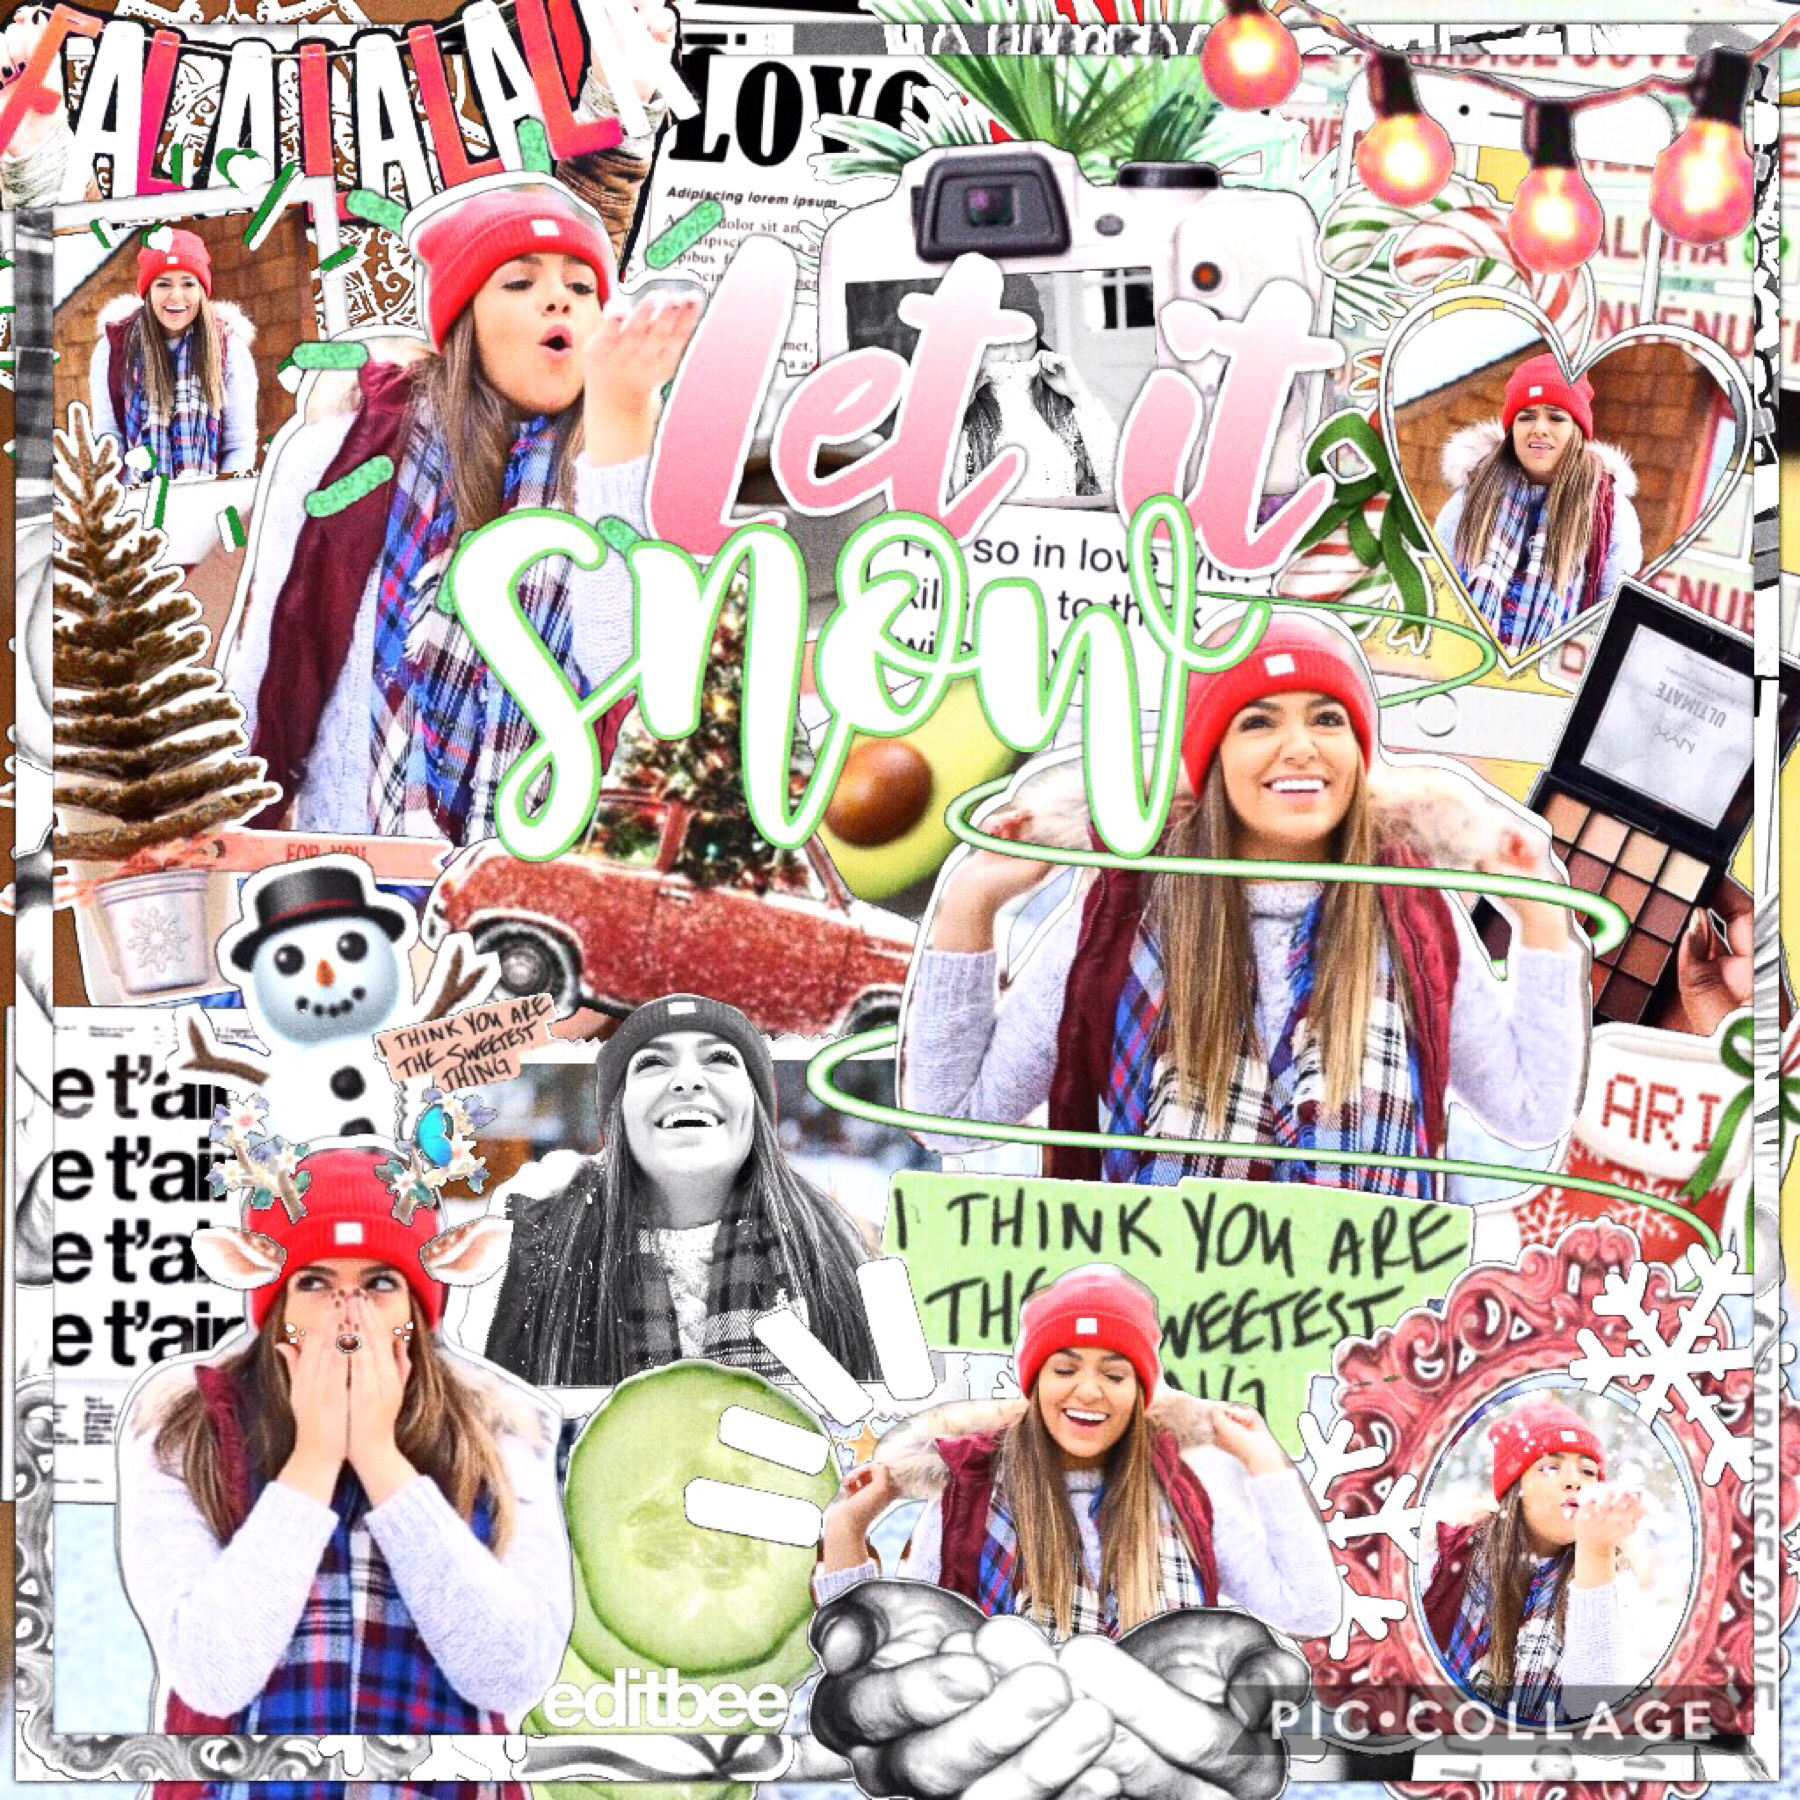 okay after a few tries I finally made a messy but decent Christmas edit! love you all 💓💓 sorry I haven't been active or responding to comments, I'm so busy with holiday szn🎄🌟